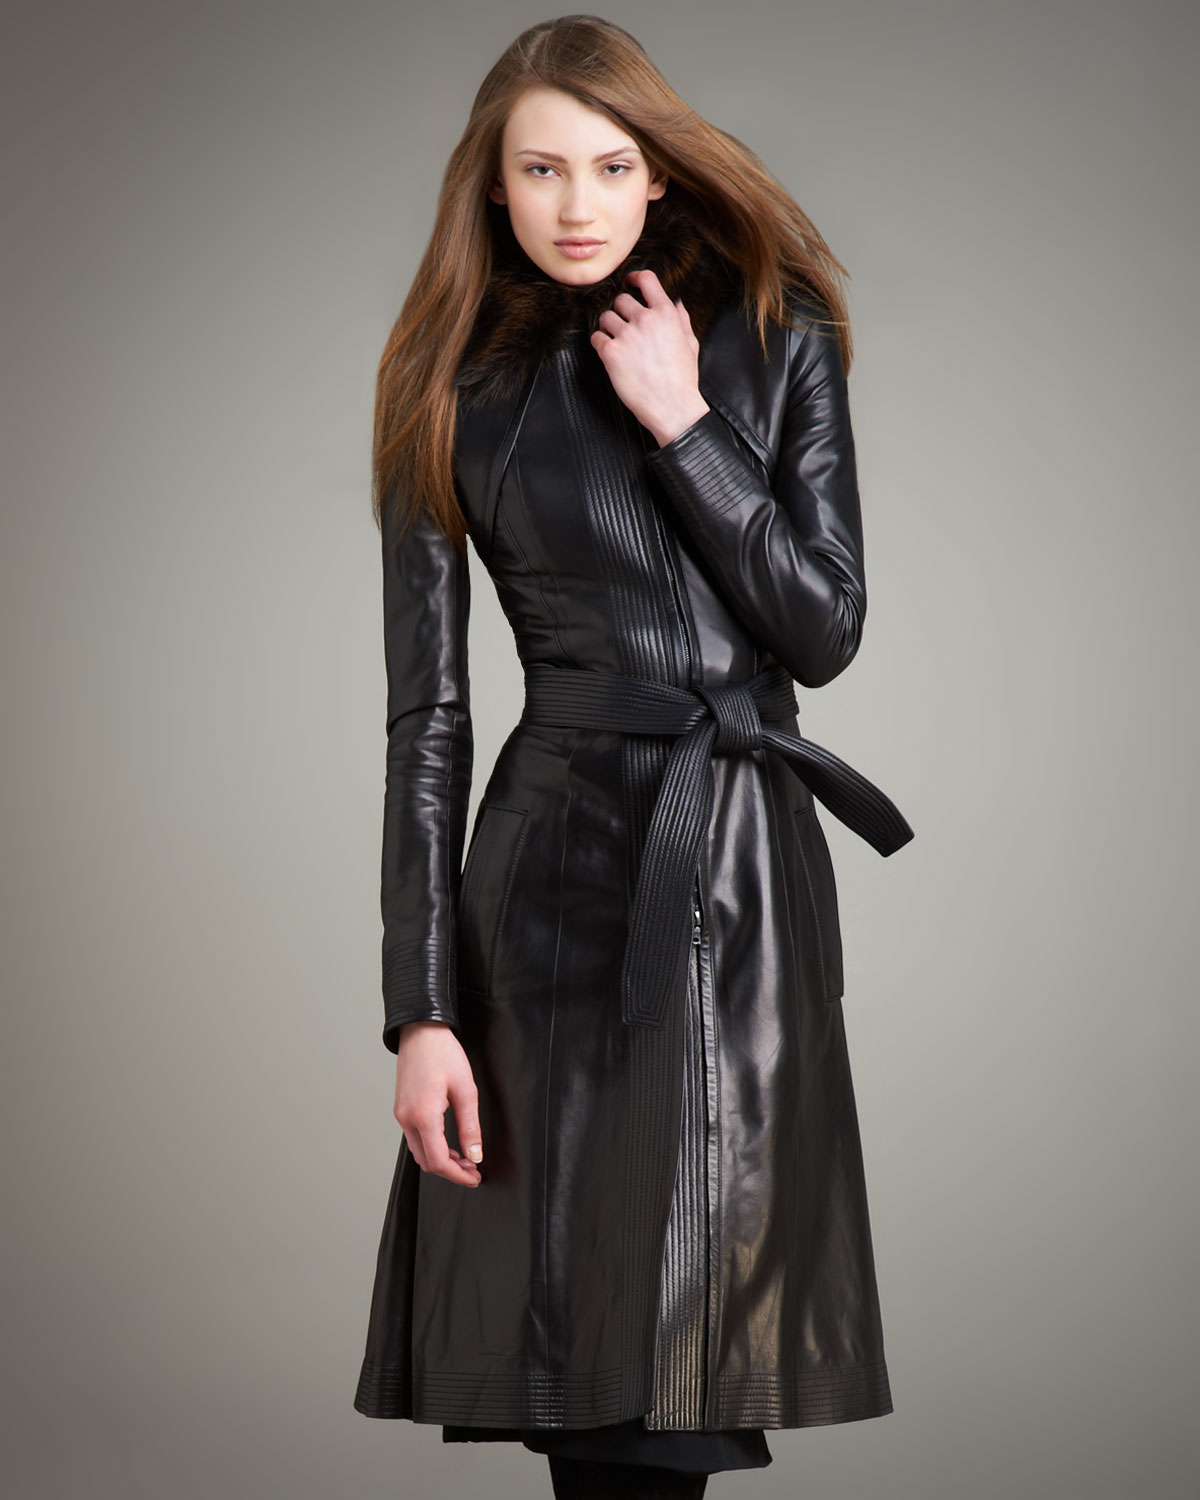 Narciso Rodriguez Fur-Collar Long Leather Coat In Black - Lyst-2379